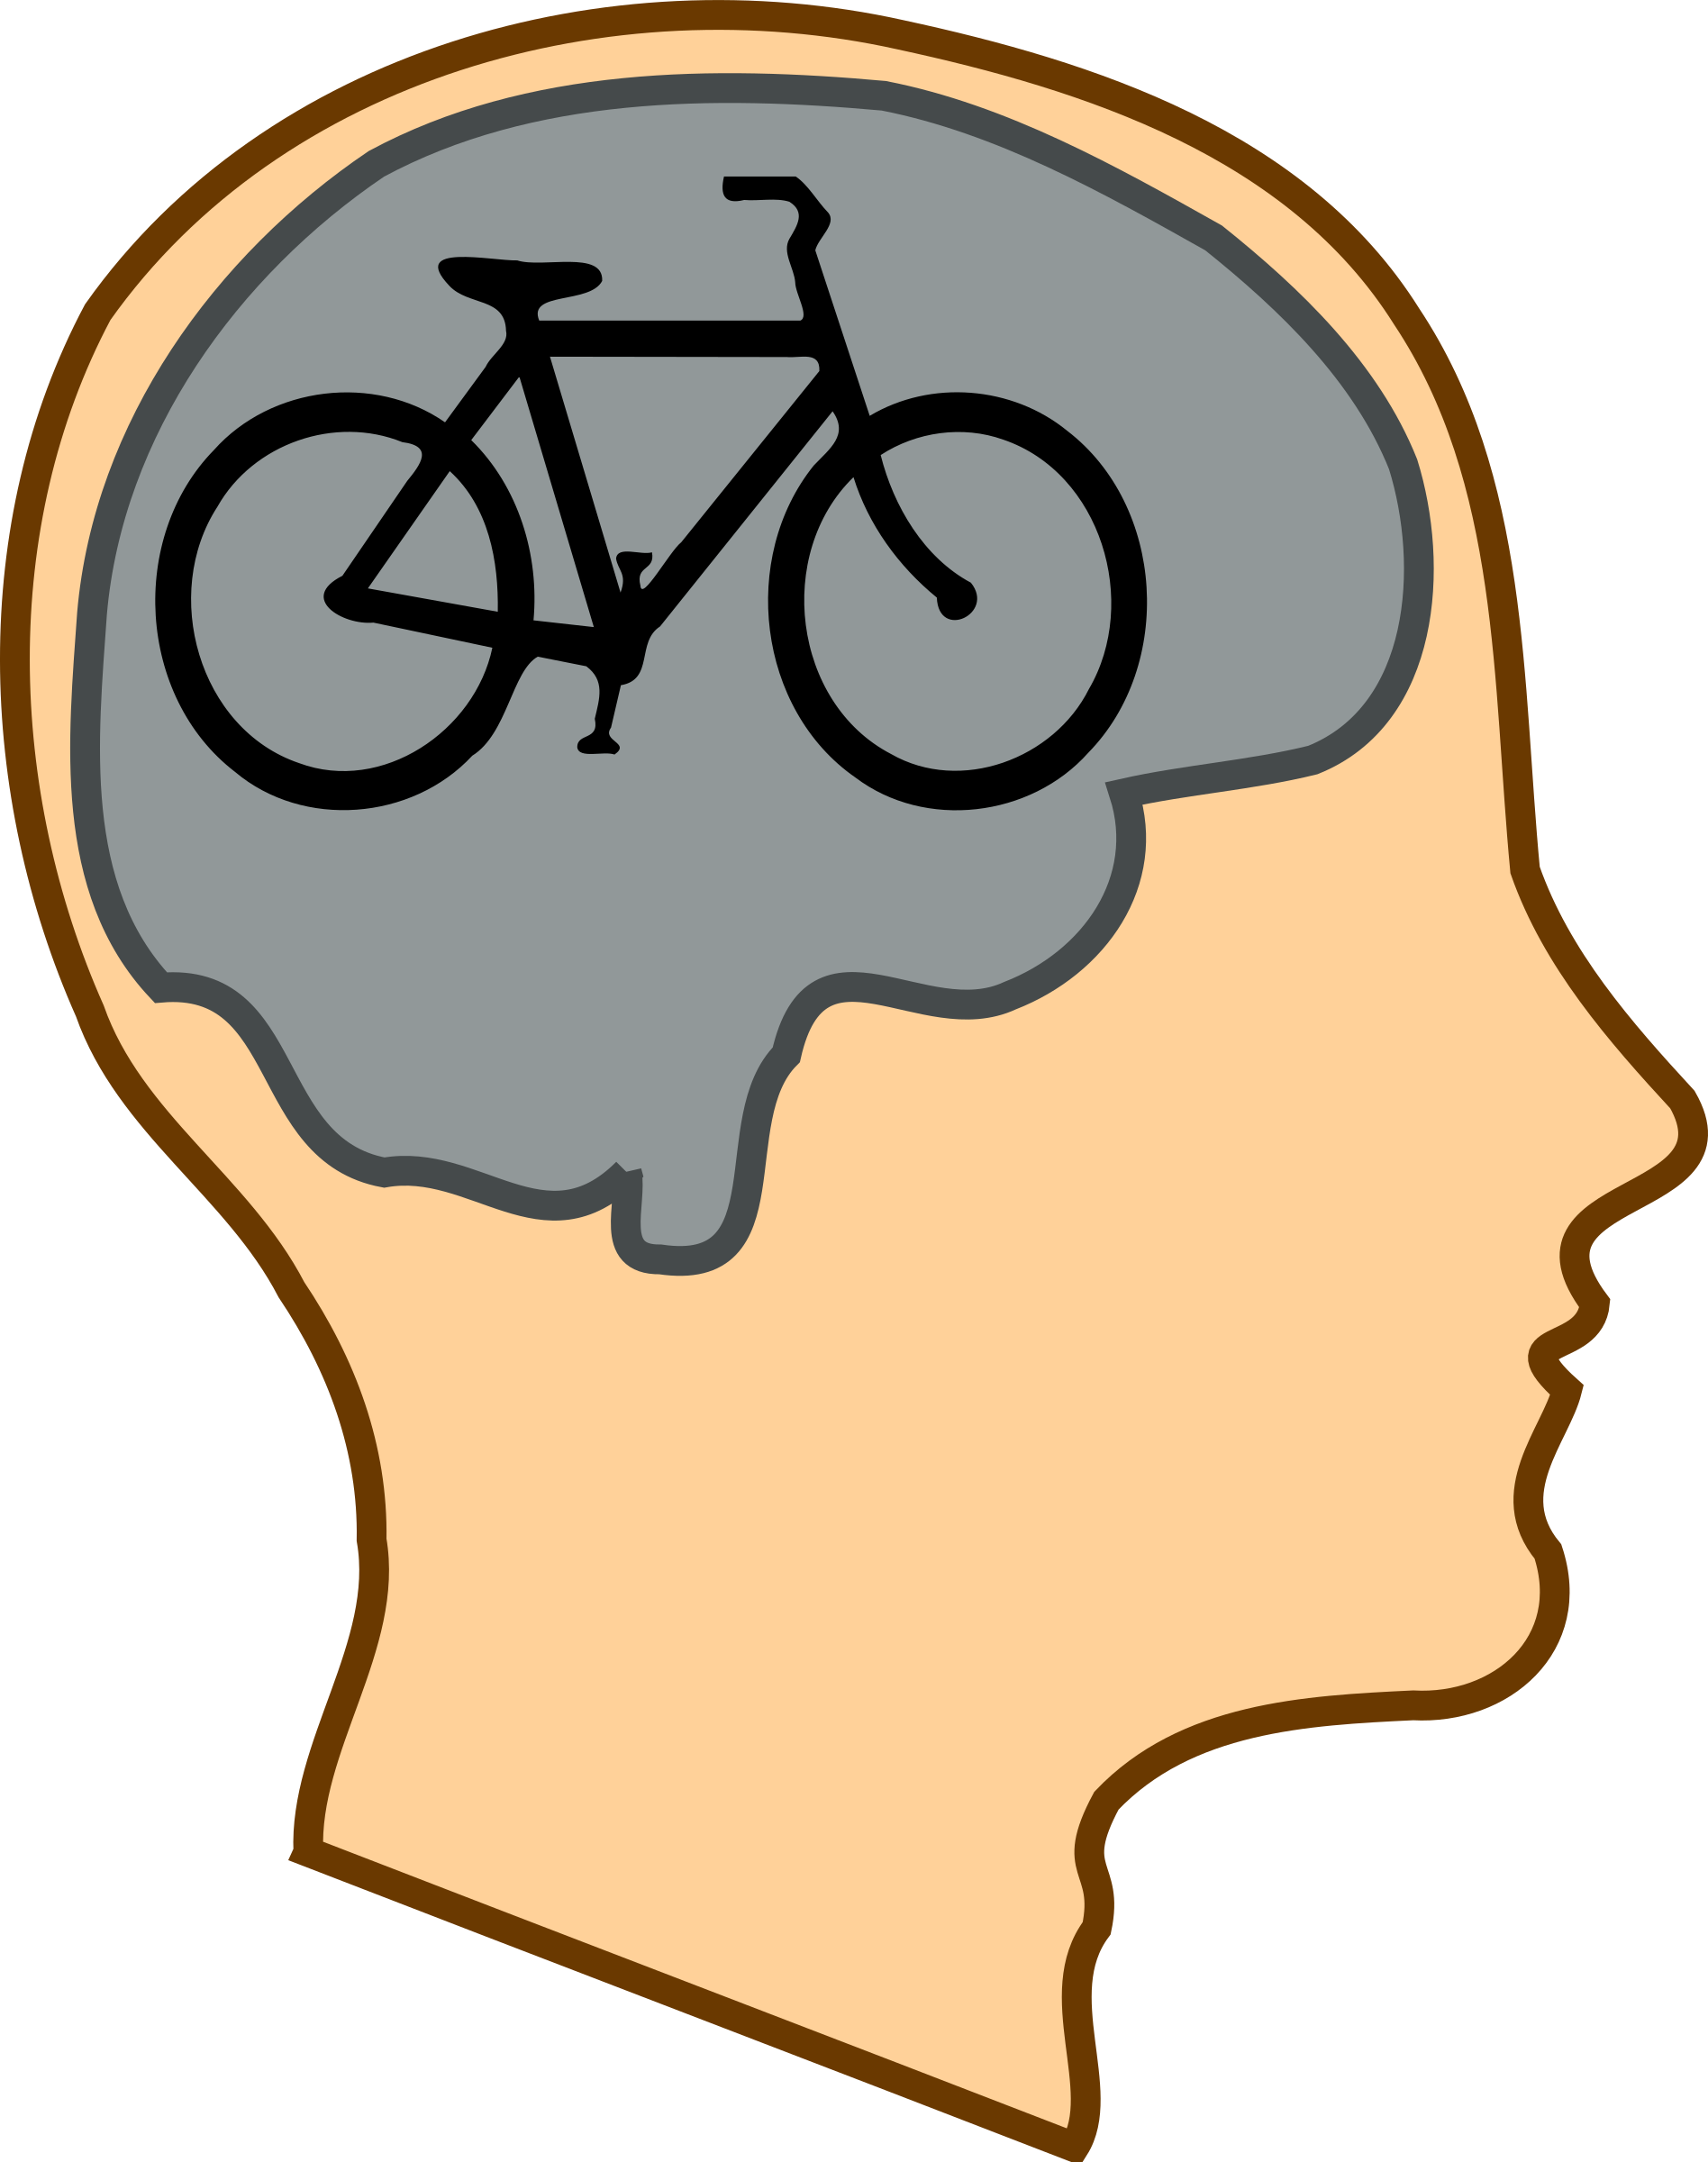 Muscles clipart brain. Bicycle for our minds